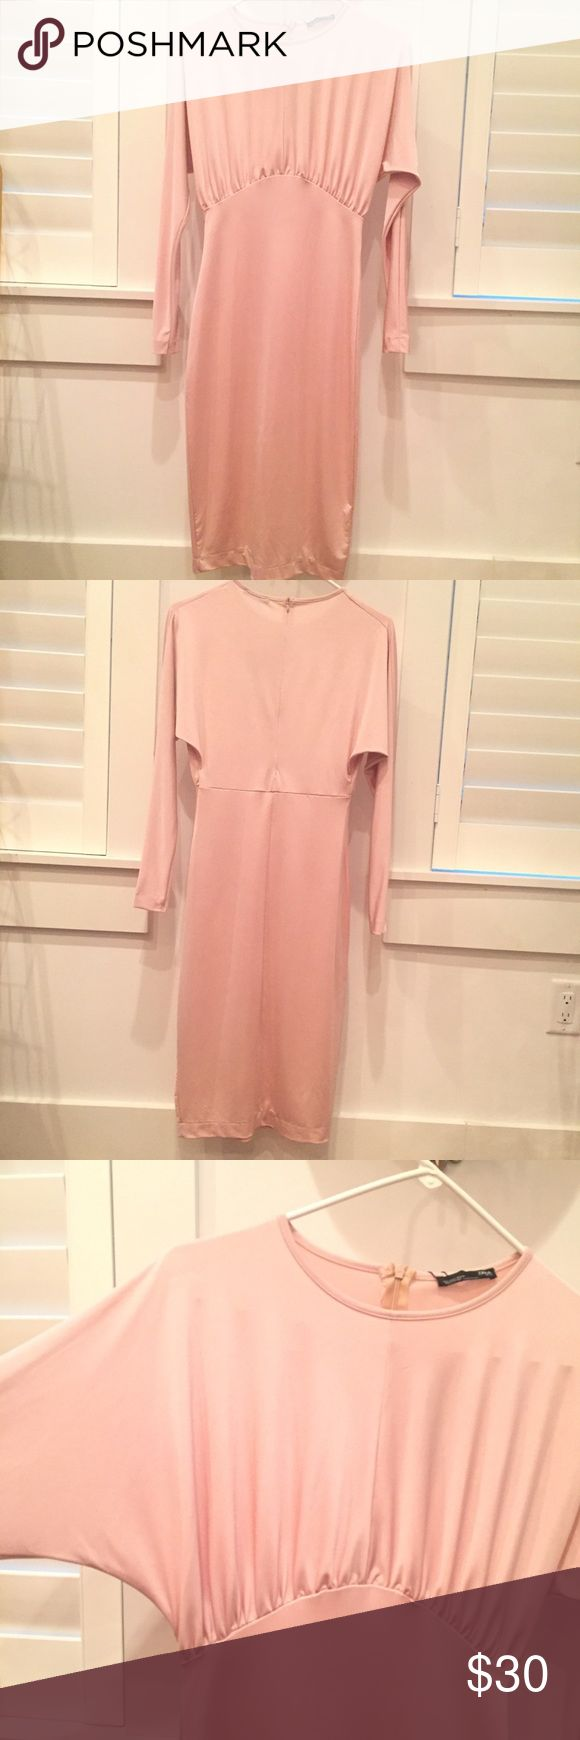 Zara Nude Cocktail Dress Long Sleeve Elegant cocktail dress.  Beautiful sheen and very chic. The color states nude on website but has a light pink undertone.  Falls just below the knee.  Perfect condition; never been worn with tag still on it. Zara Dresses Long Sleeve